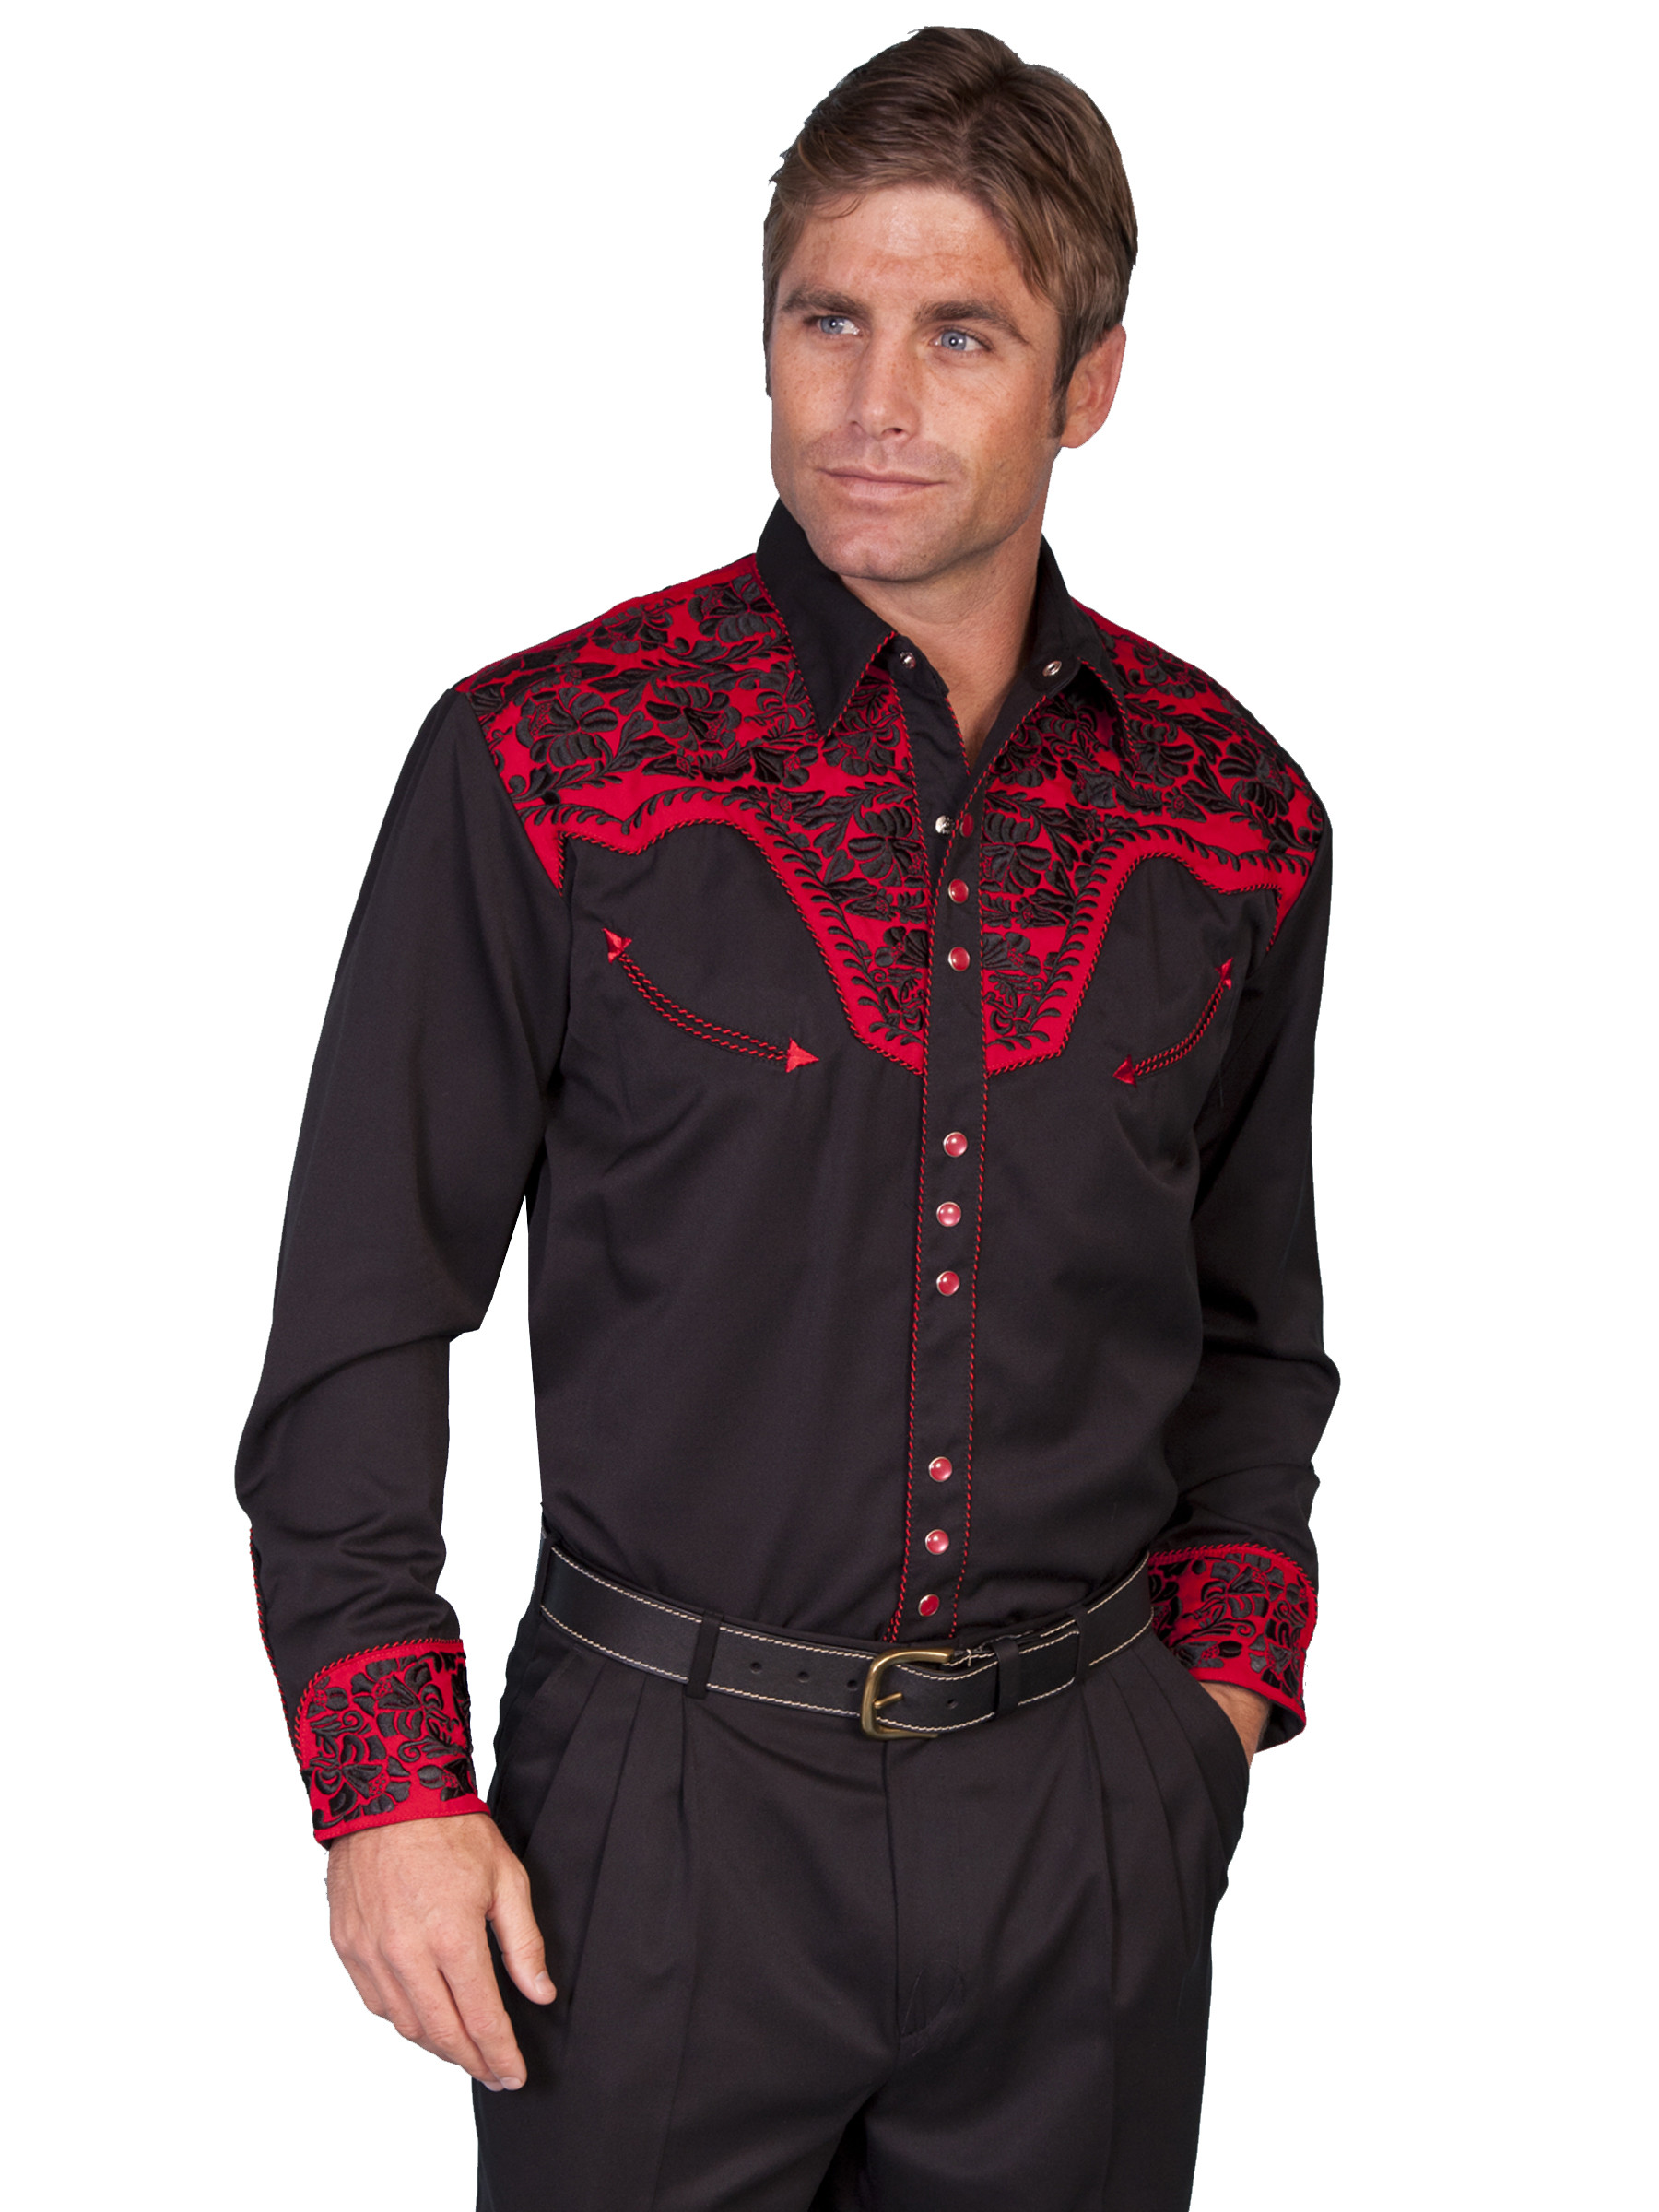 Short Sleeve Mens Dress Shirt